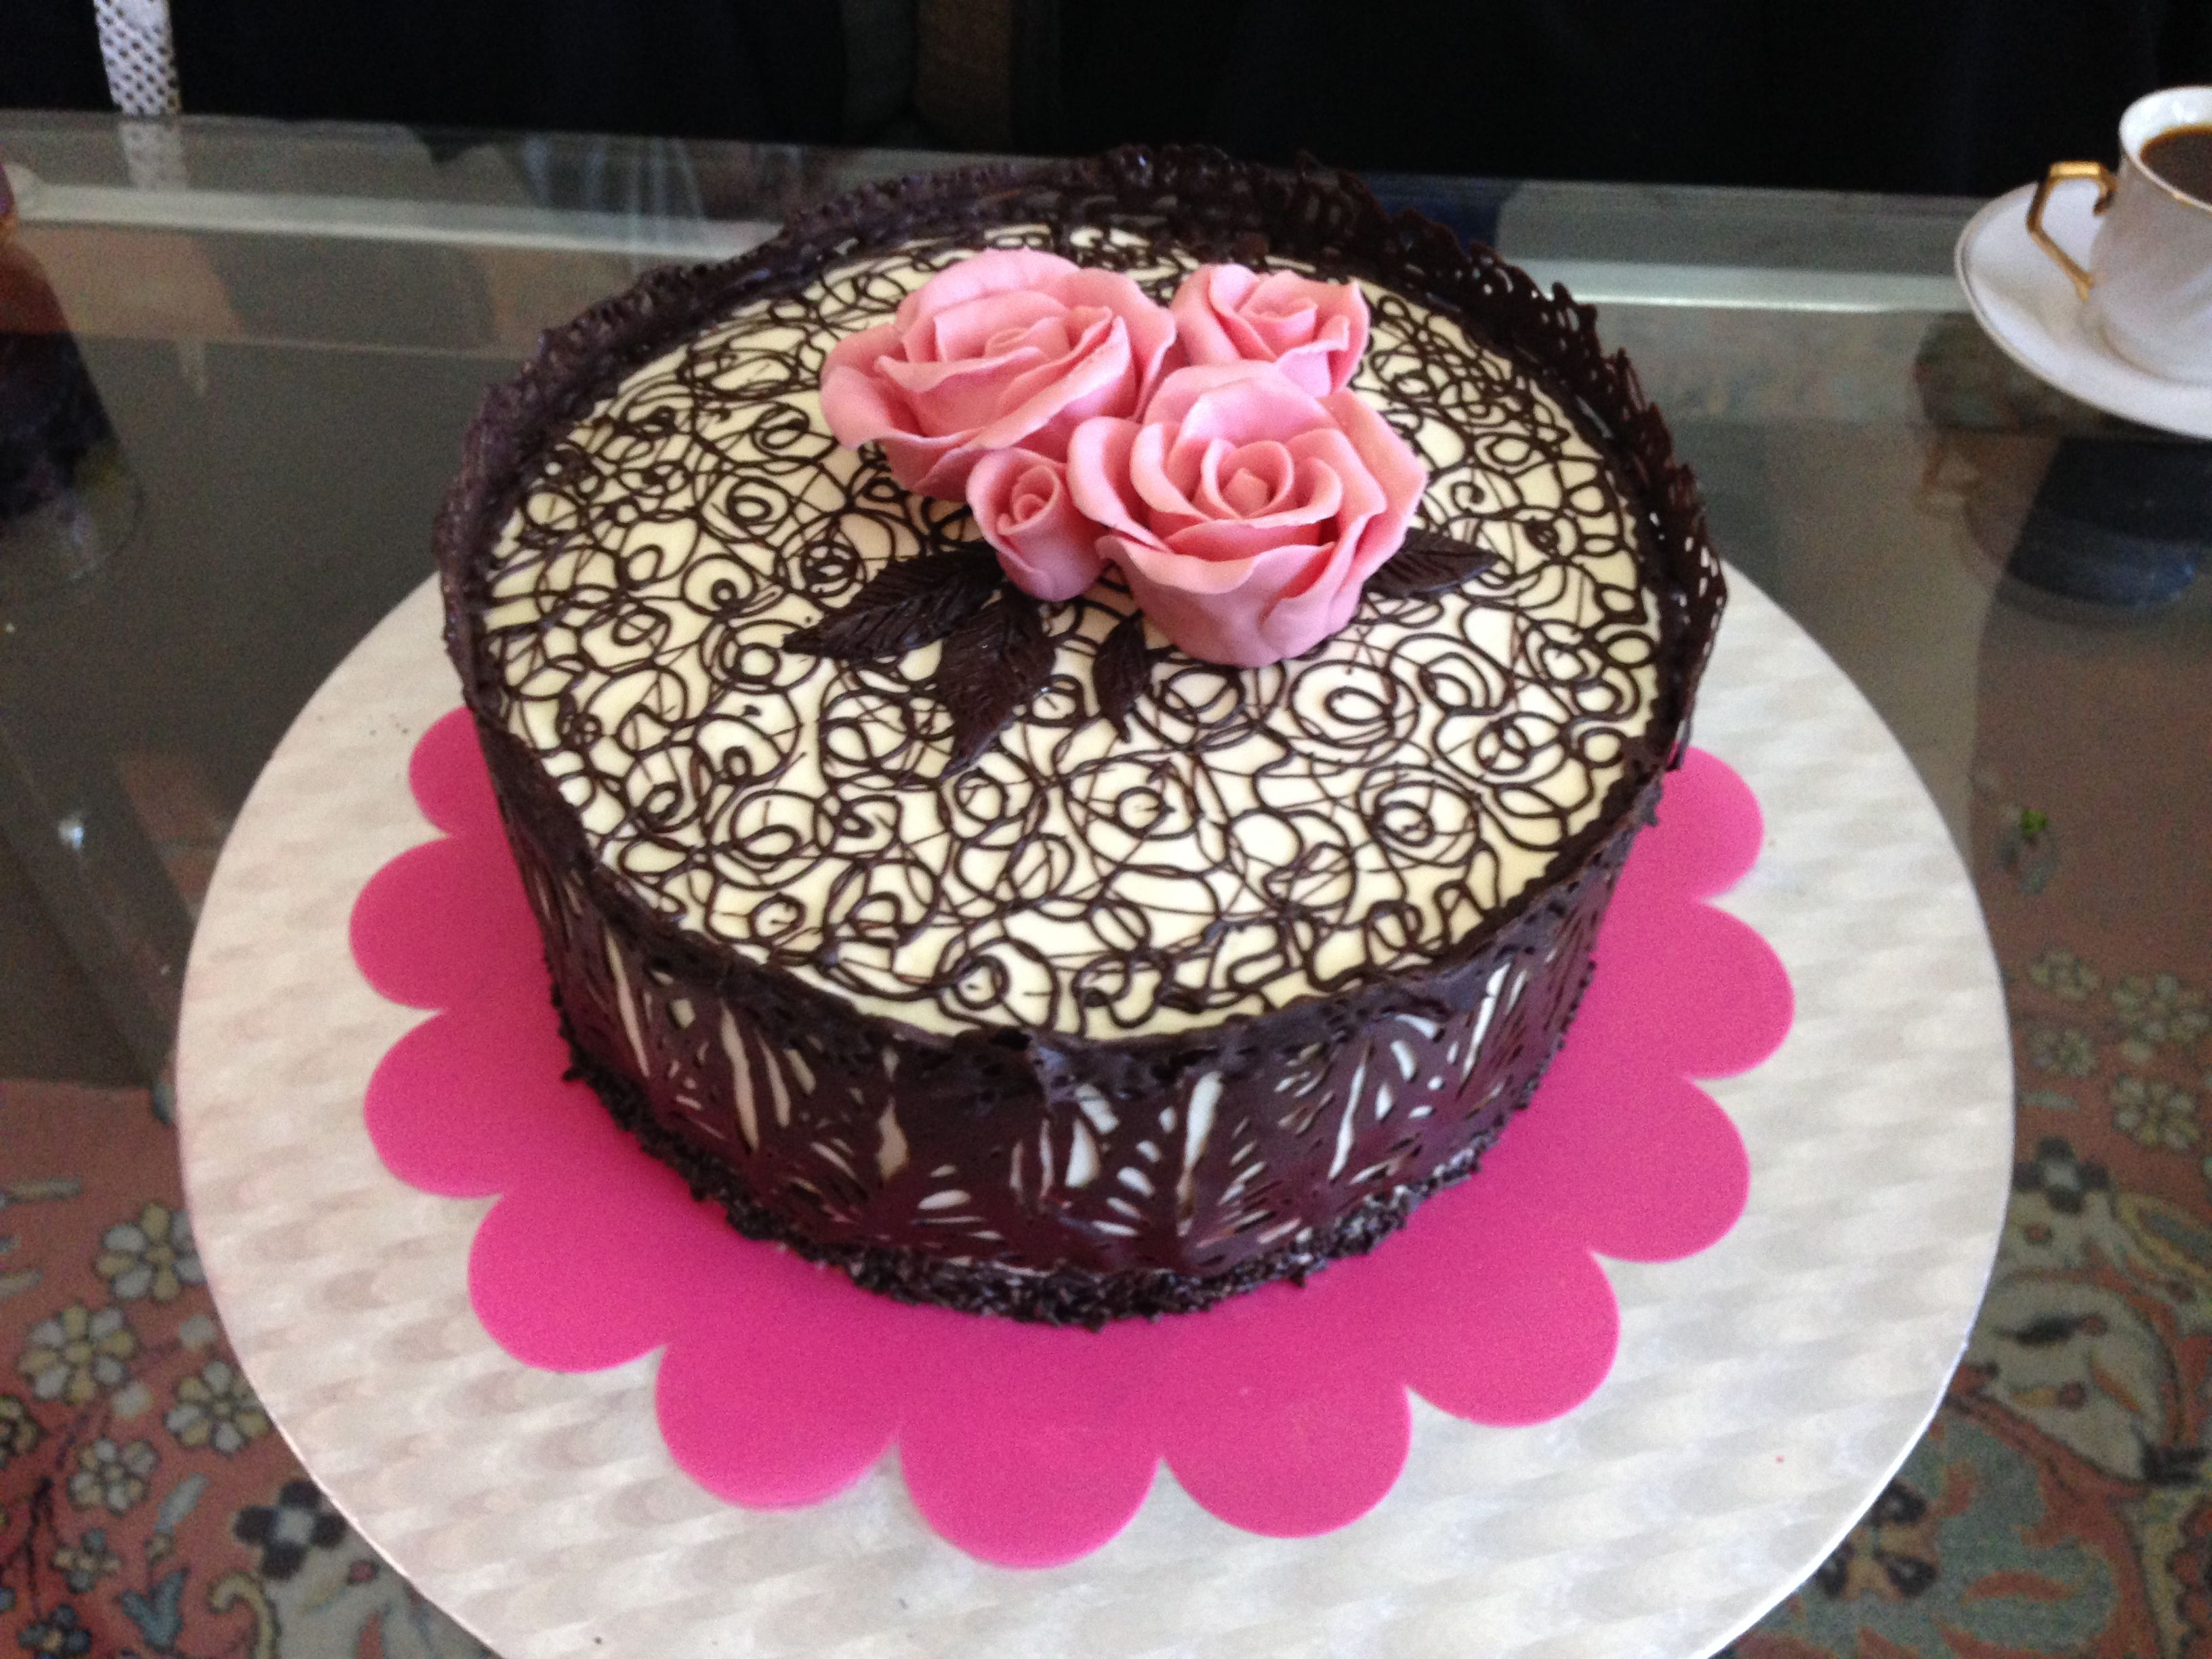 chocolate lace cake with white modeling chocolate flowers | My ...